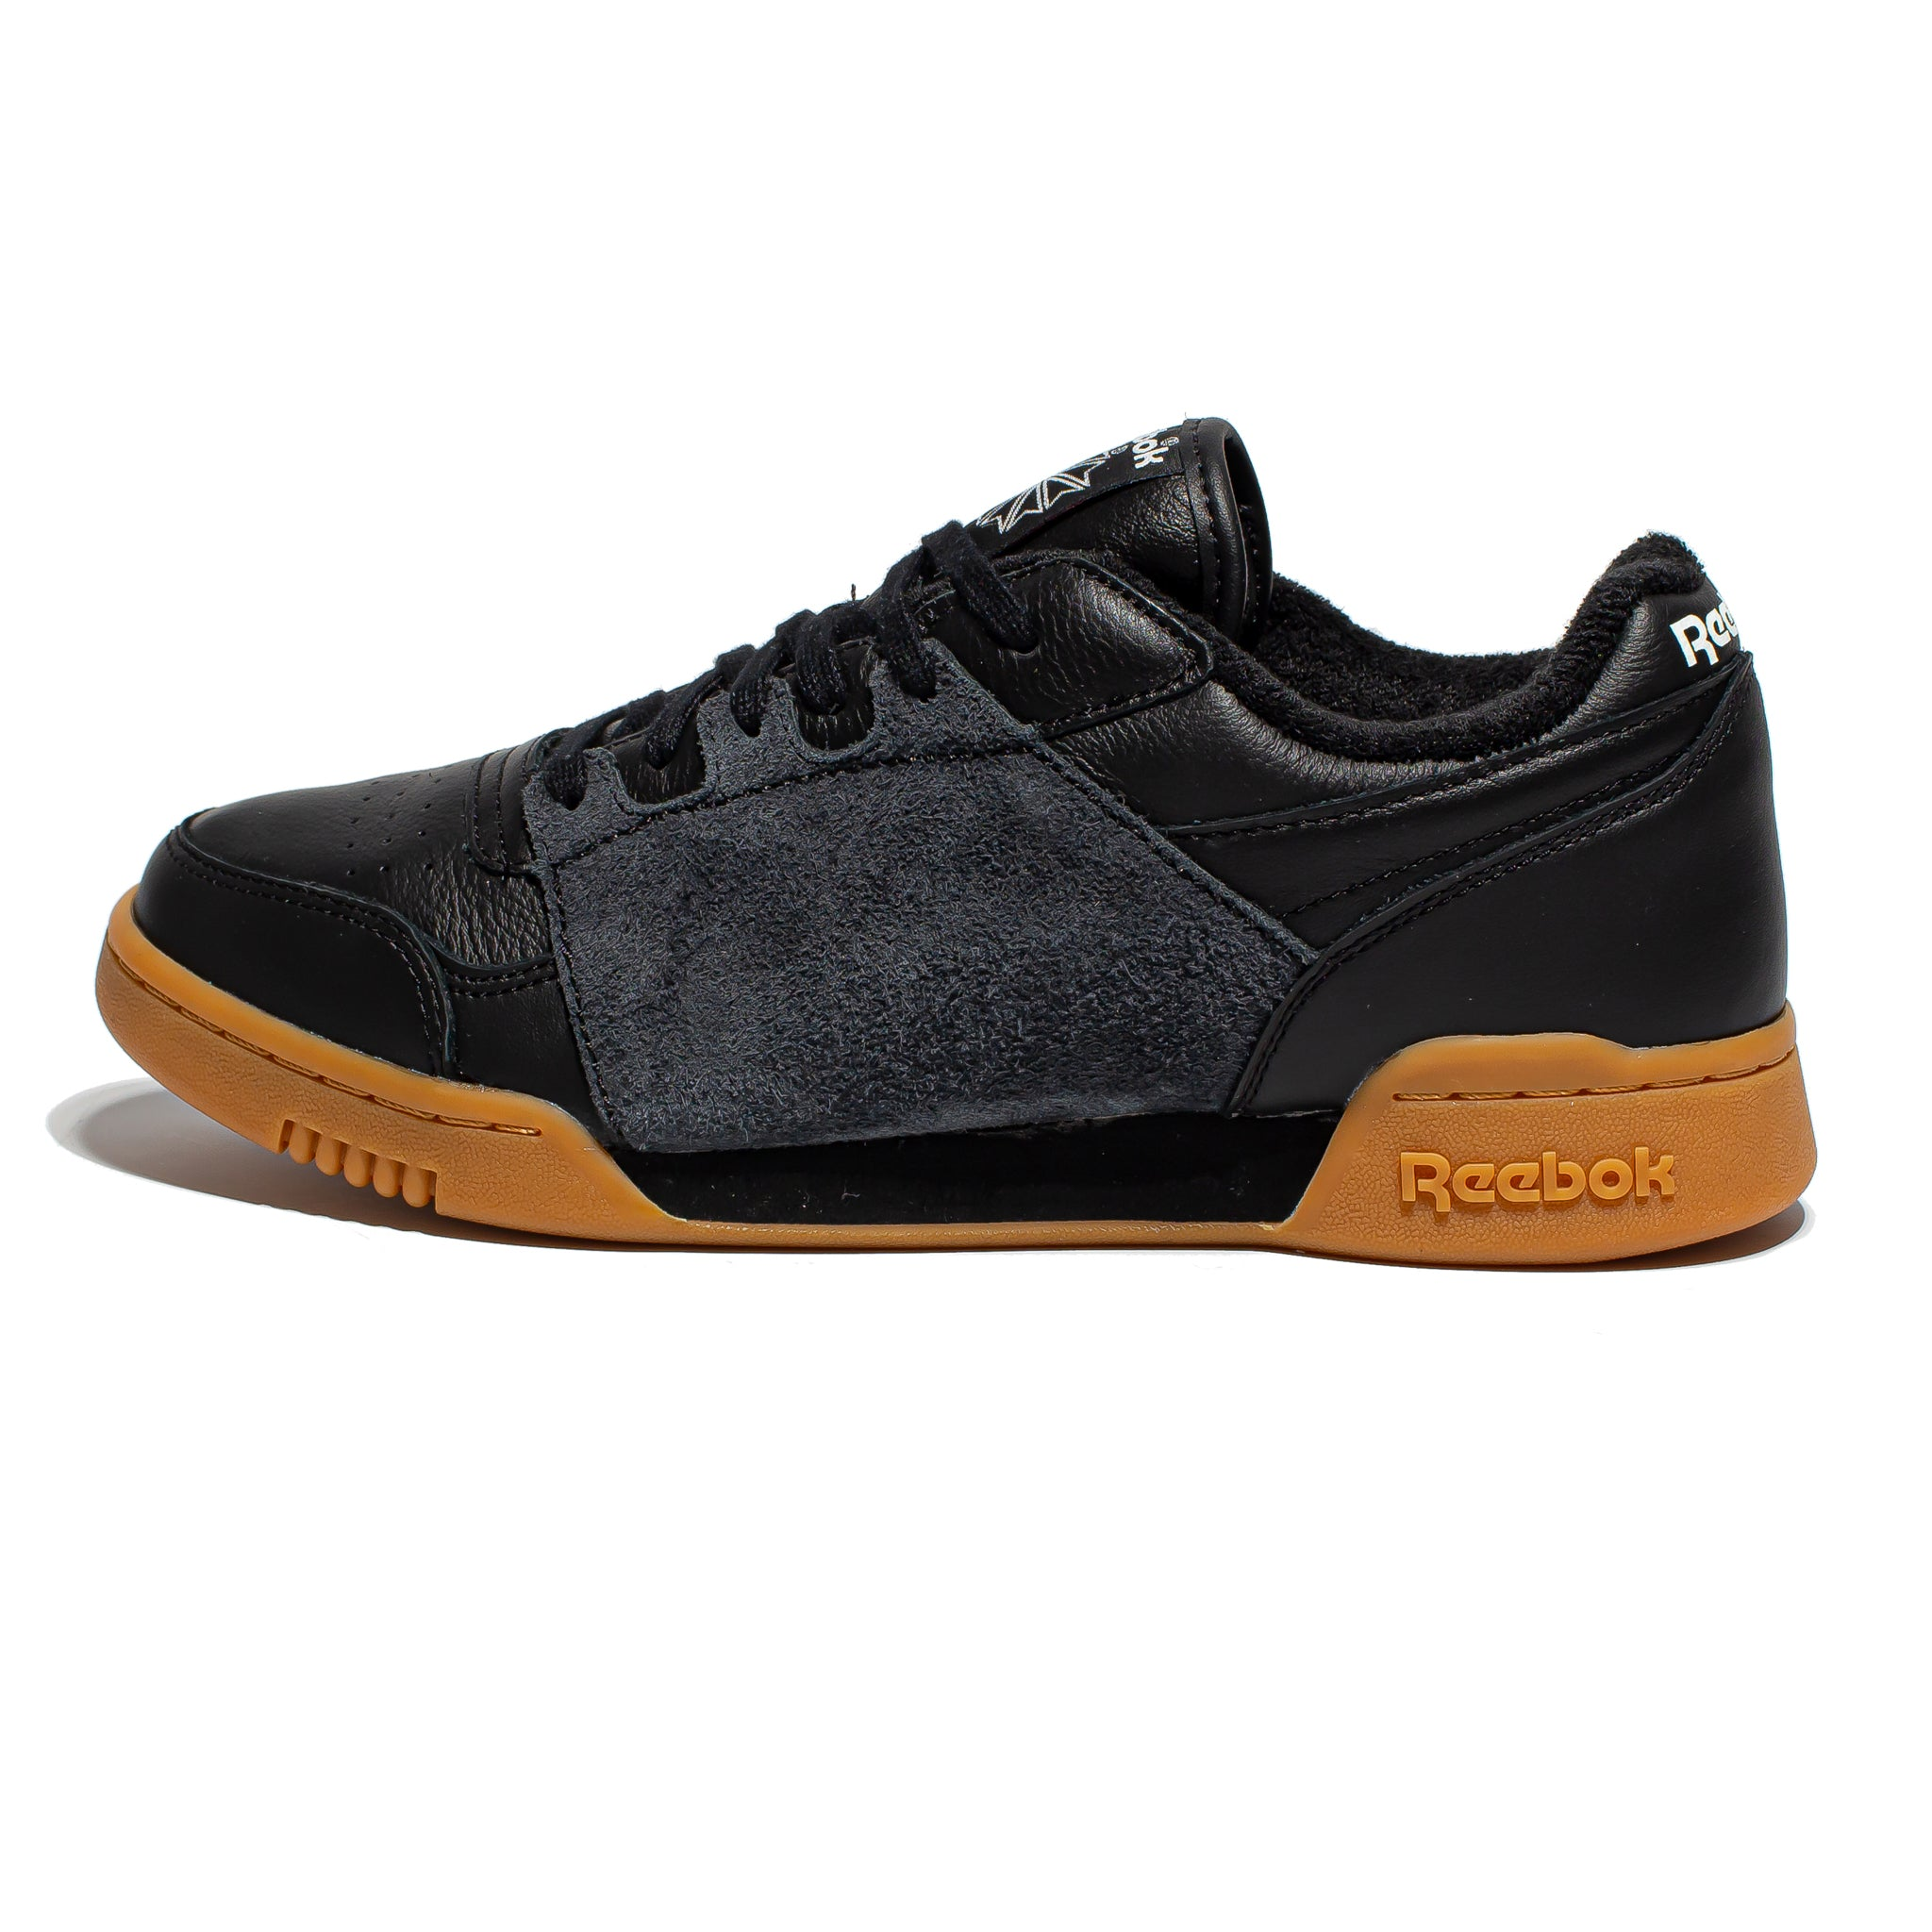 Reebok x Nepenthes Workout Plus Black/Gum